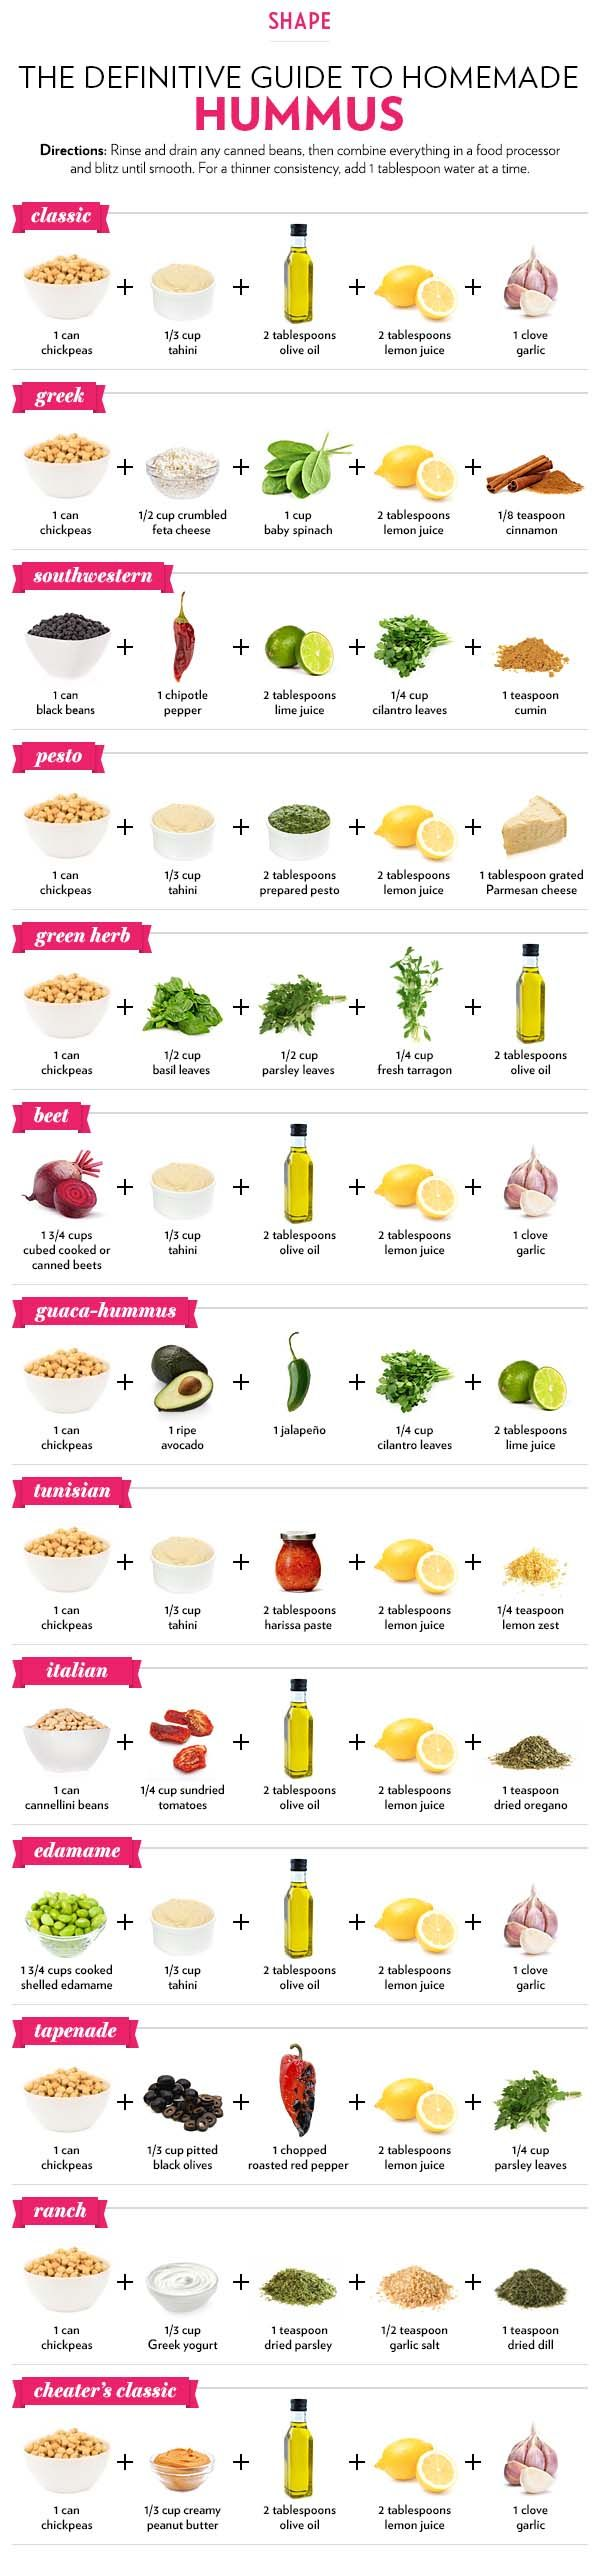 13 Different ways to make hummus.